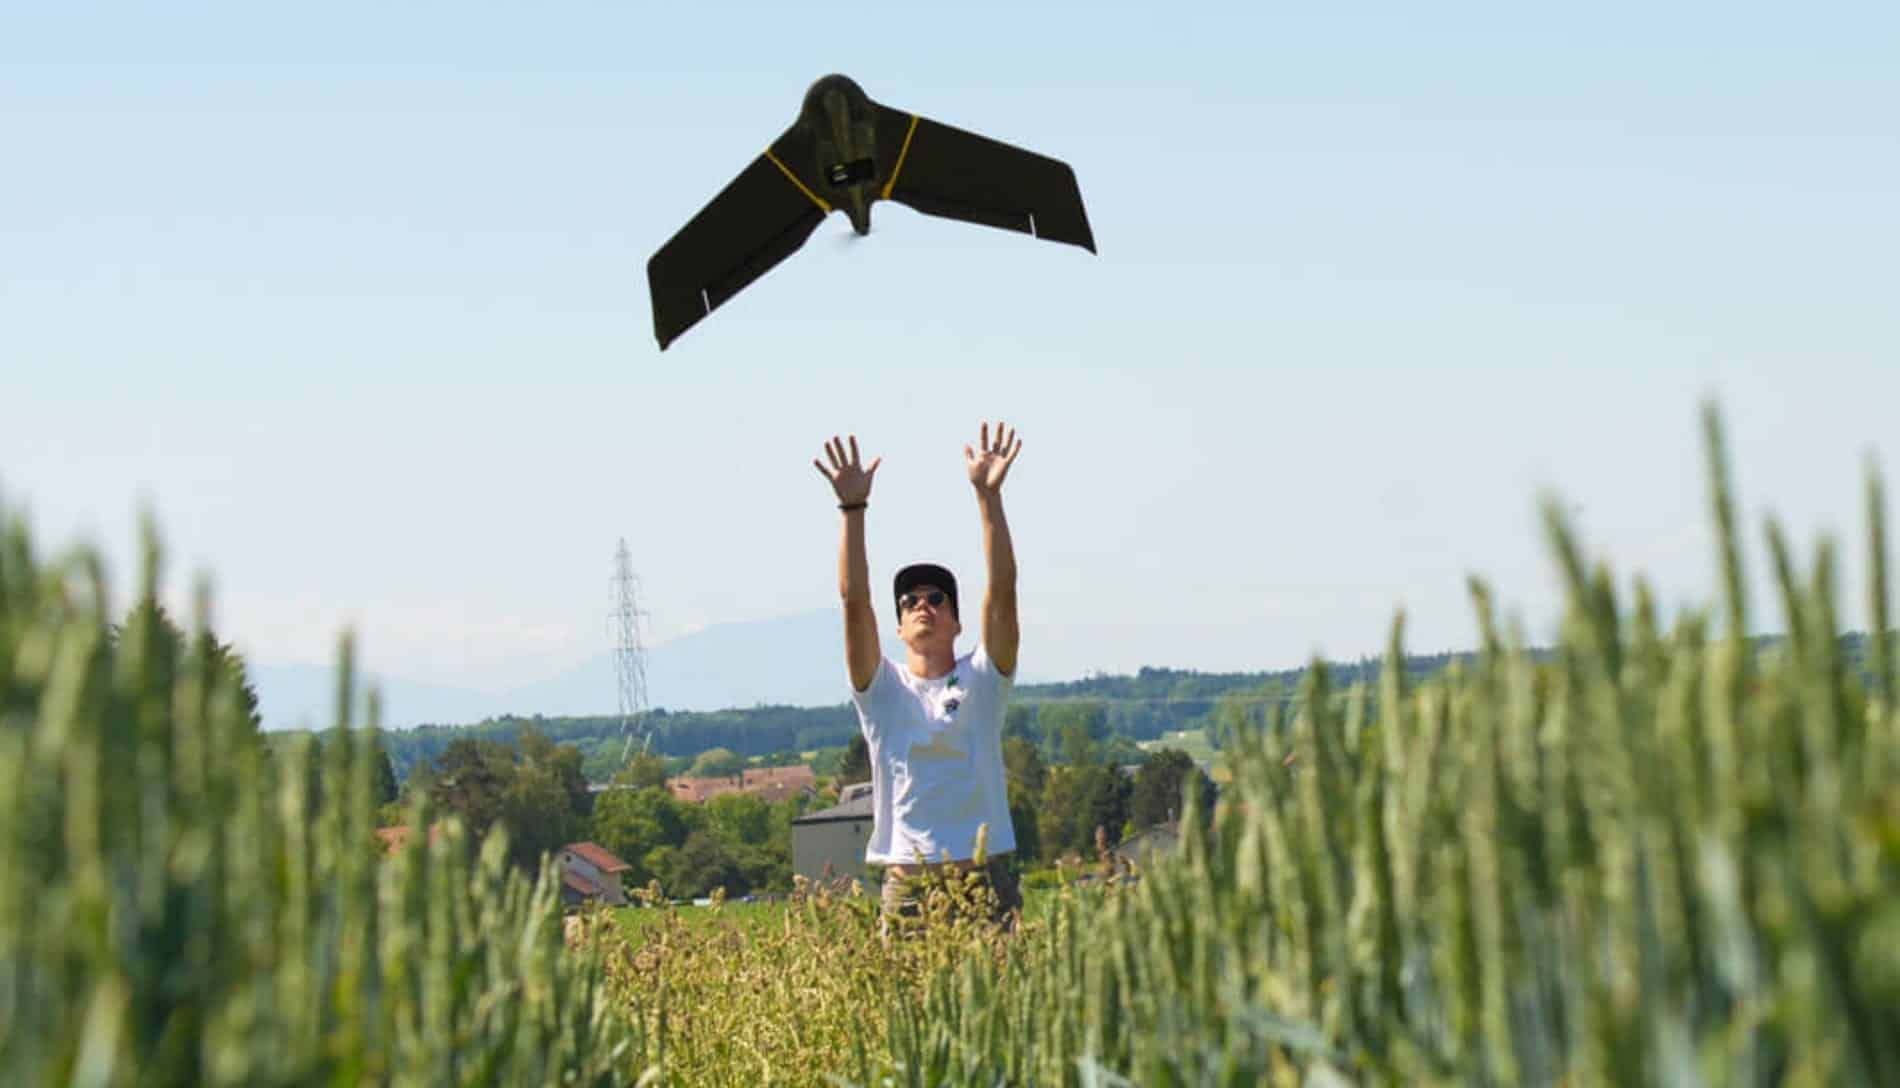 senseFly – Scaling new safety heights with fixed-wing drone technology